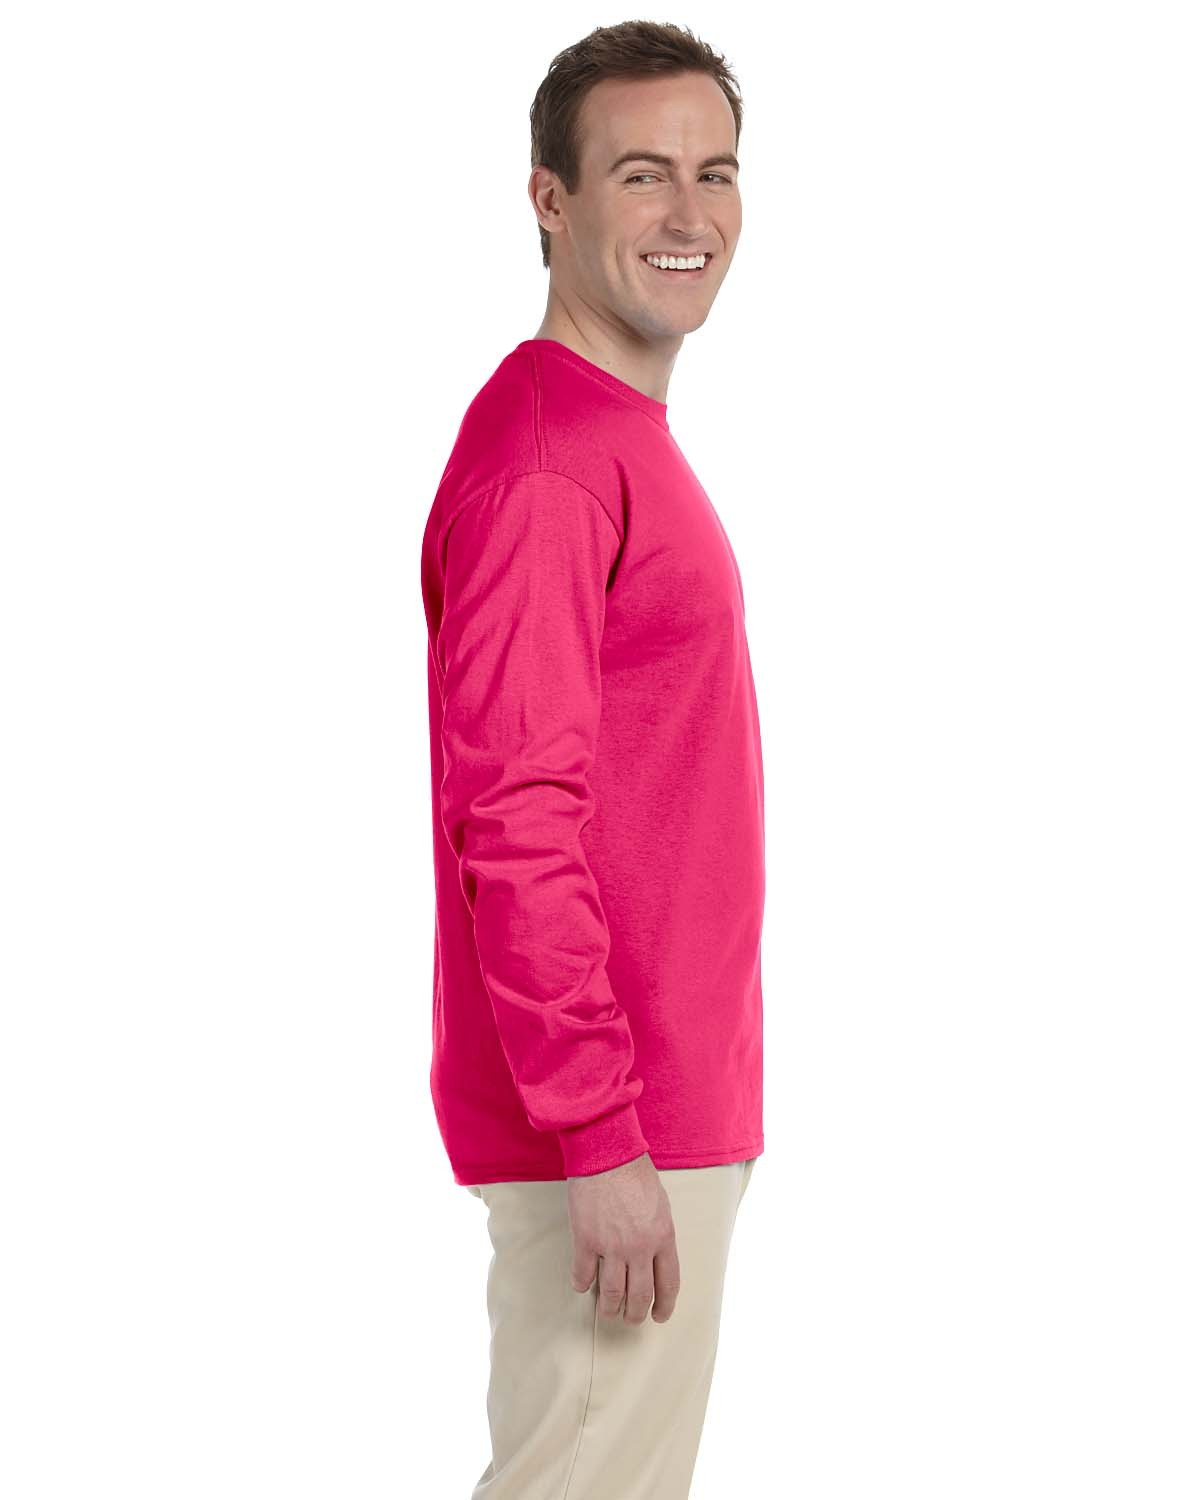 4930 Fruit of the Loom CYBER PINK